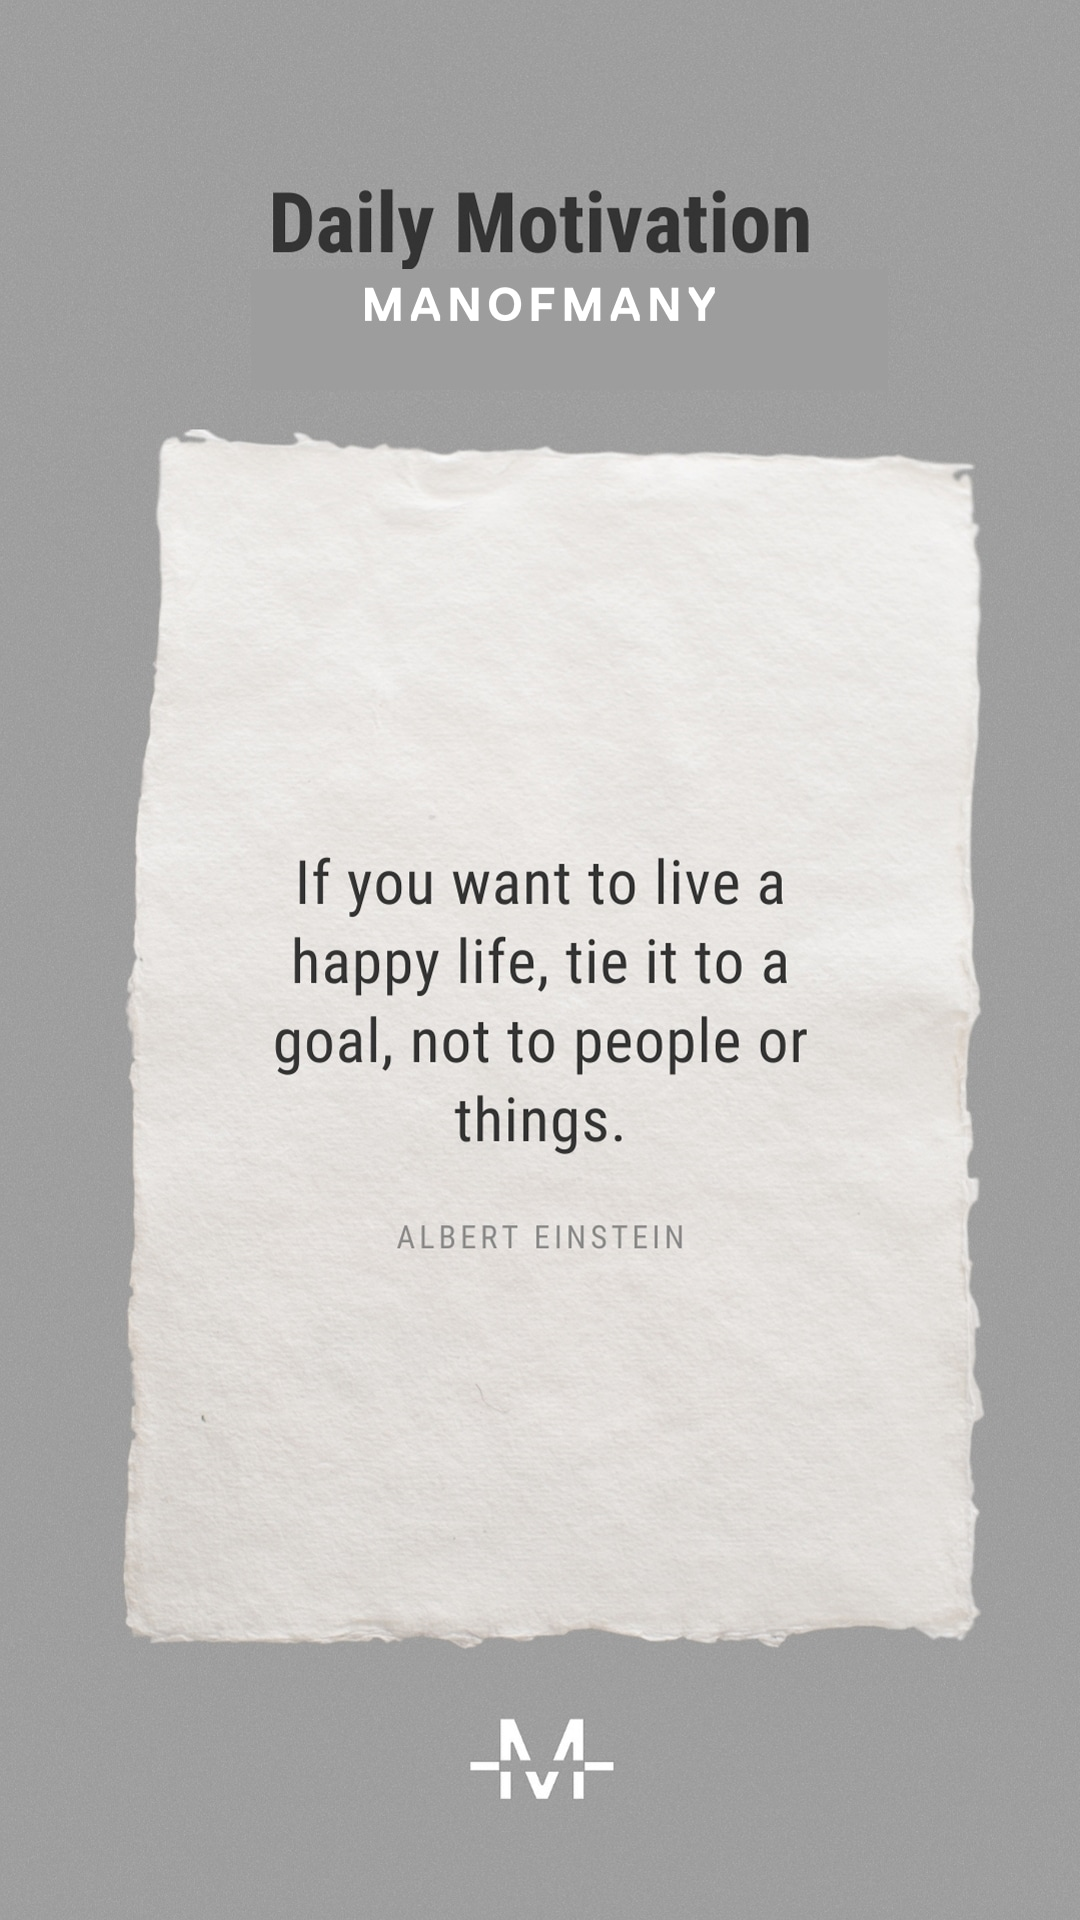 If you want to live a happy life, tie it to a goal, not to people or things.– Albert Einstein quote